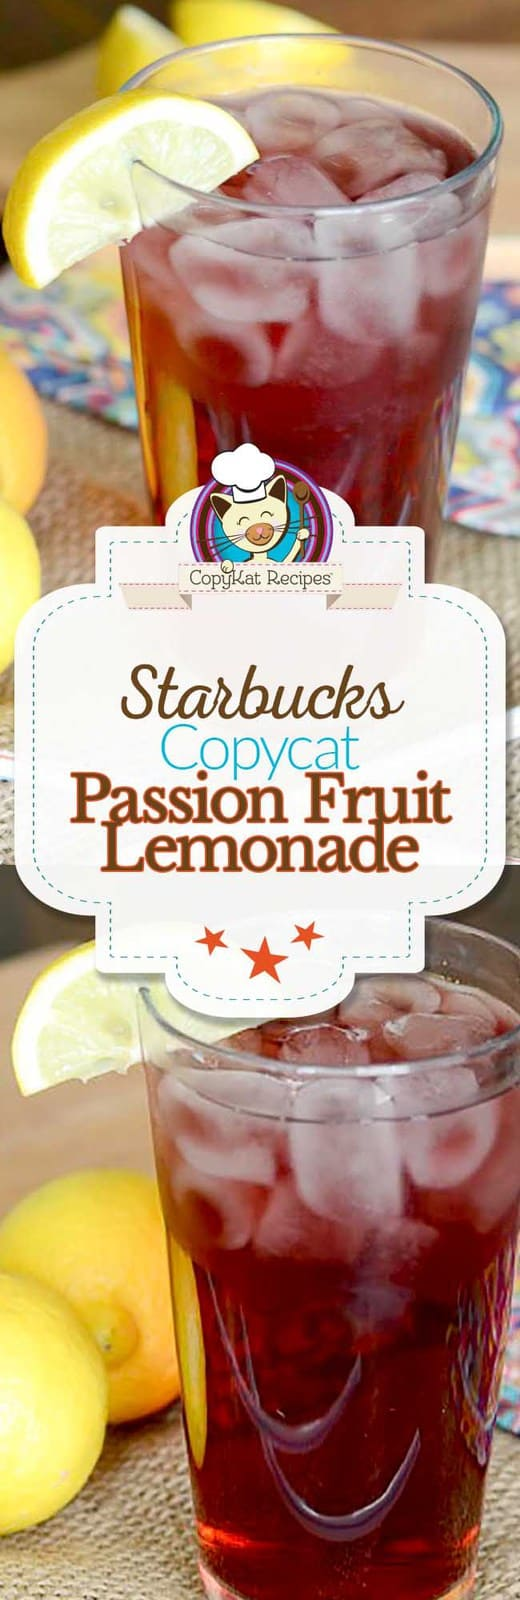 You can recreate the Starbucks Passion Fruit Lemonade at home with this easy copycat recipe.